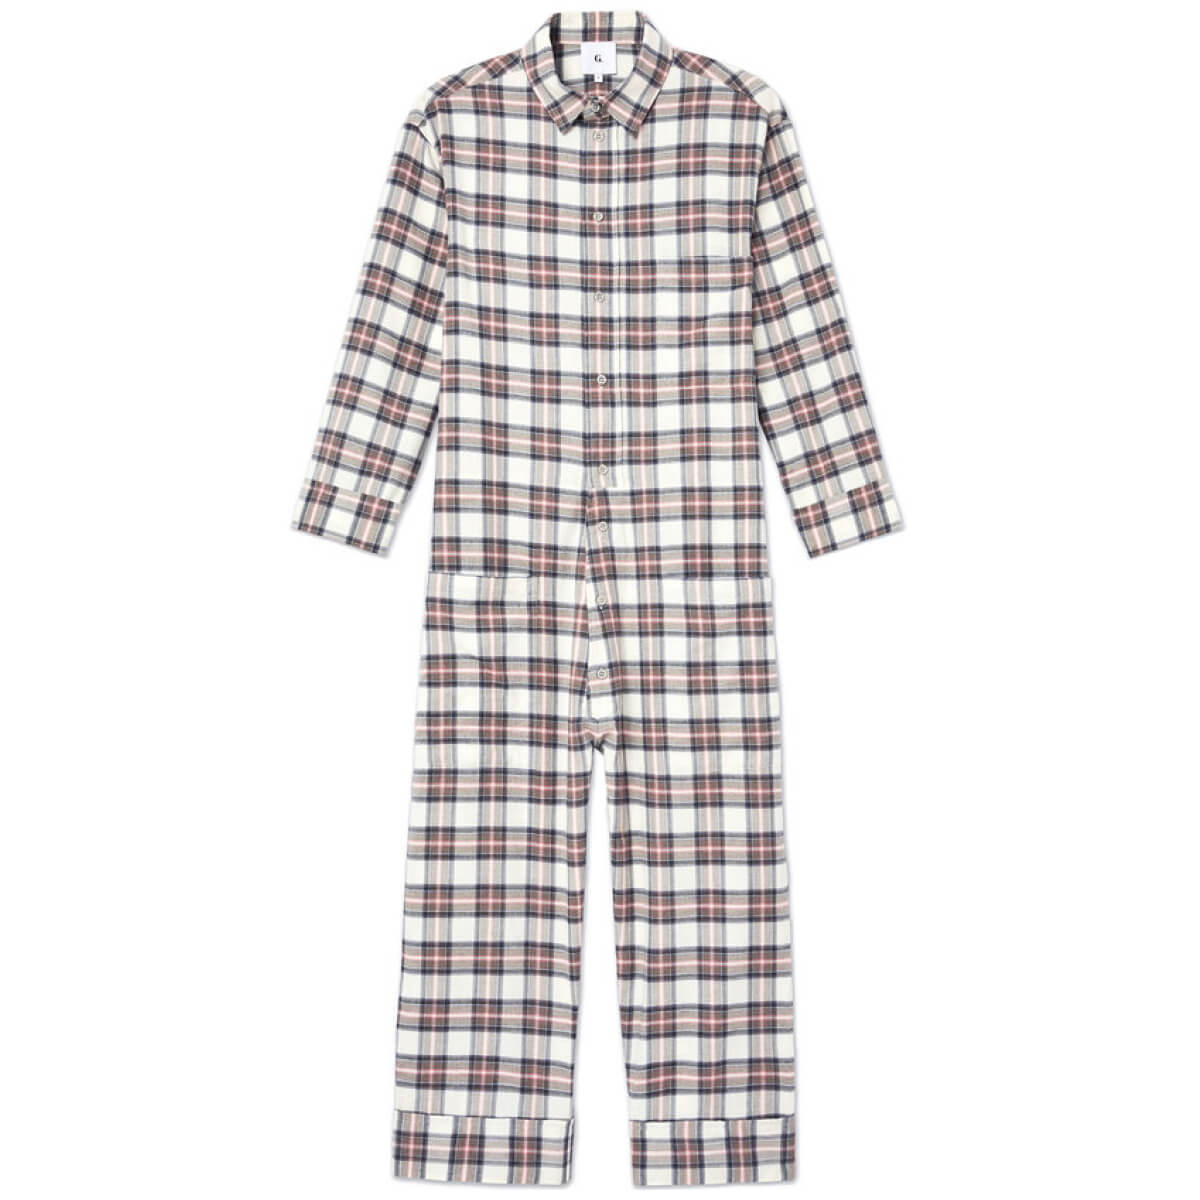 G. Label courtney flannel pajamas